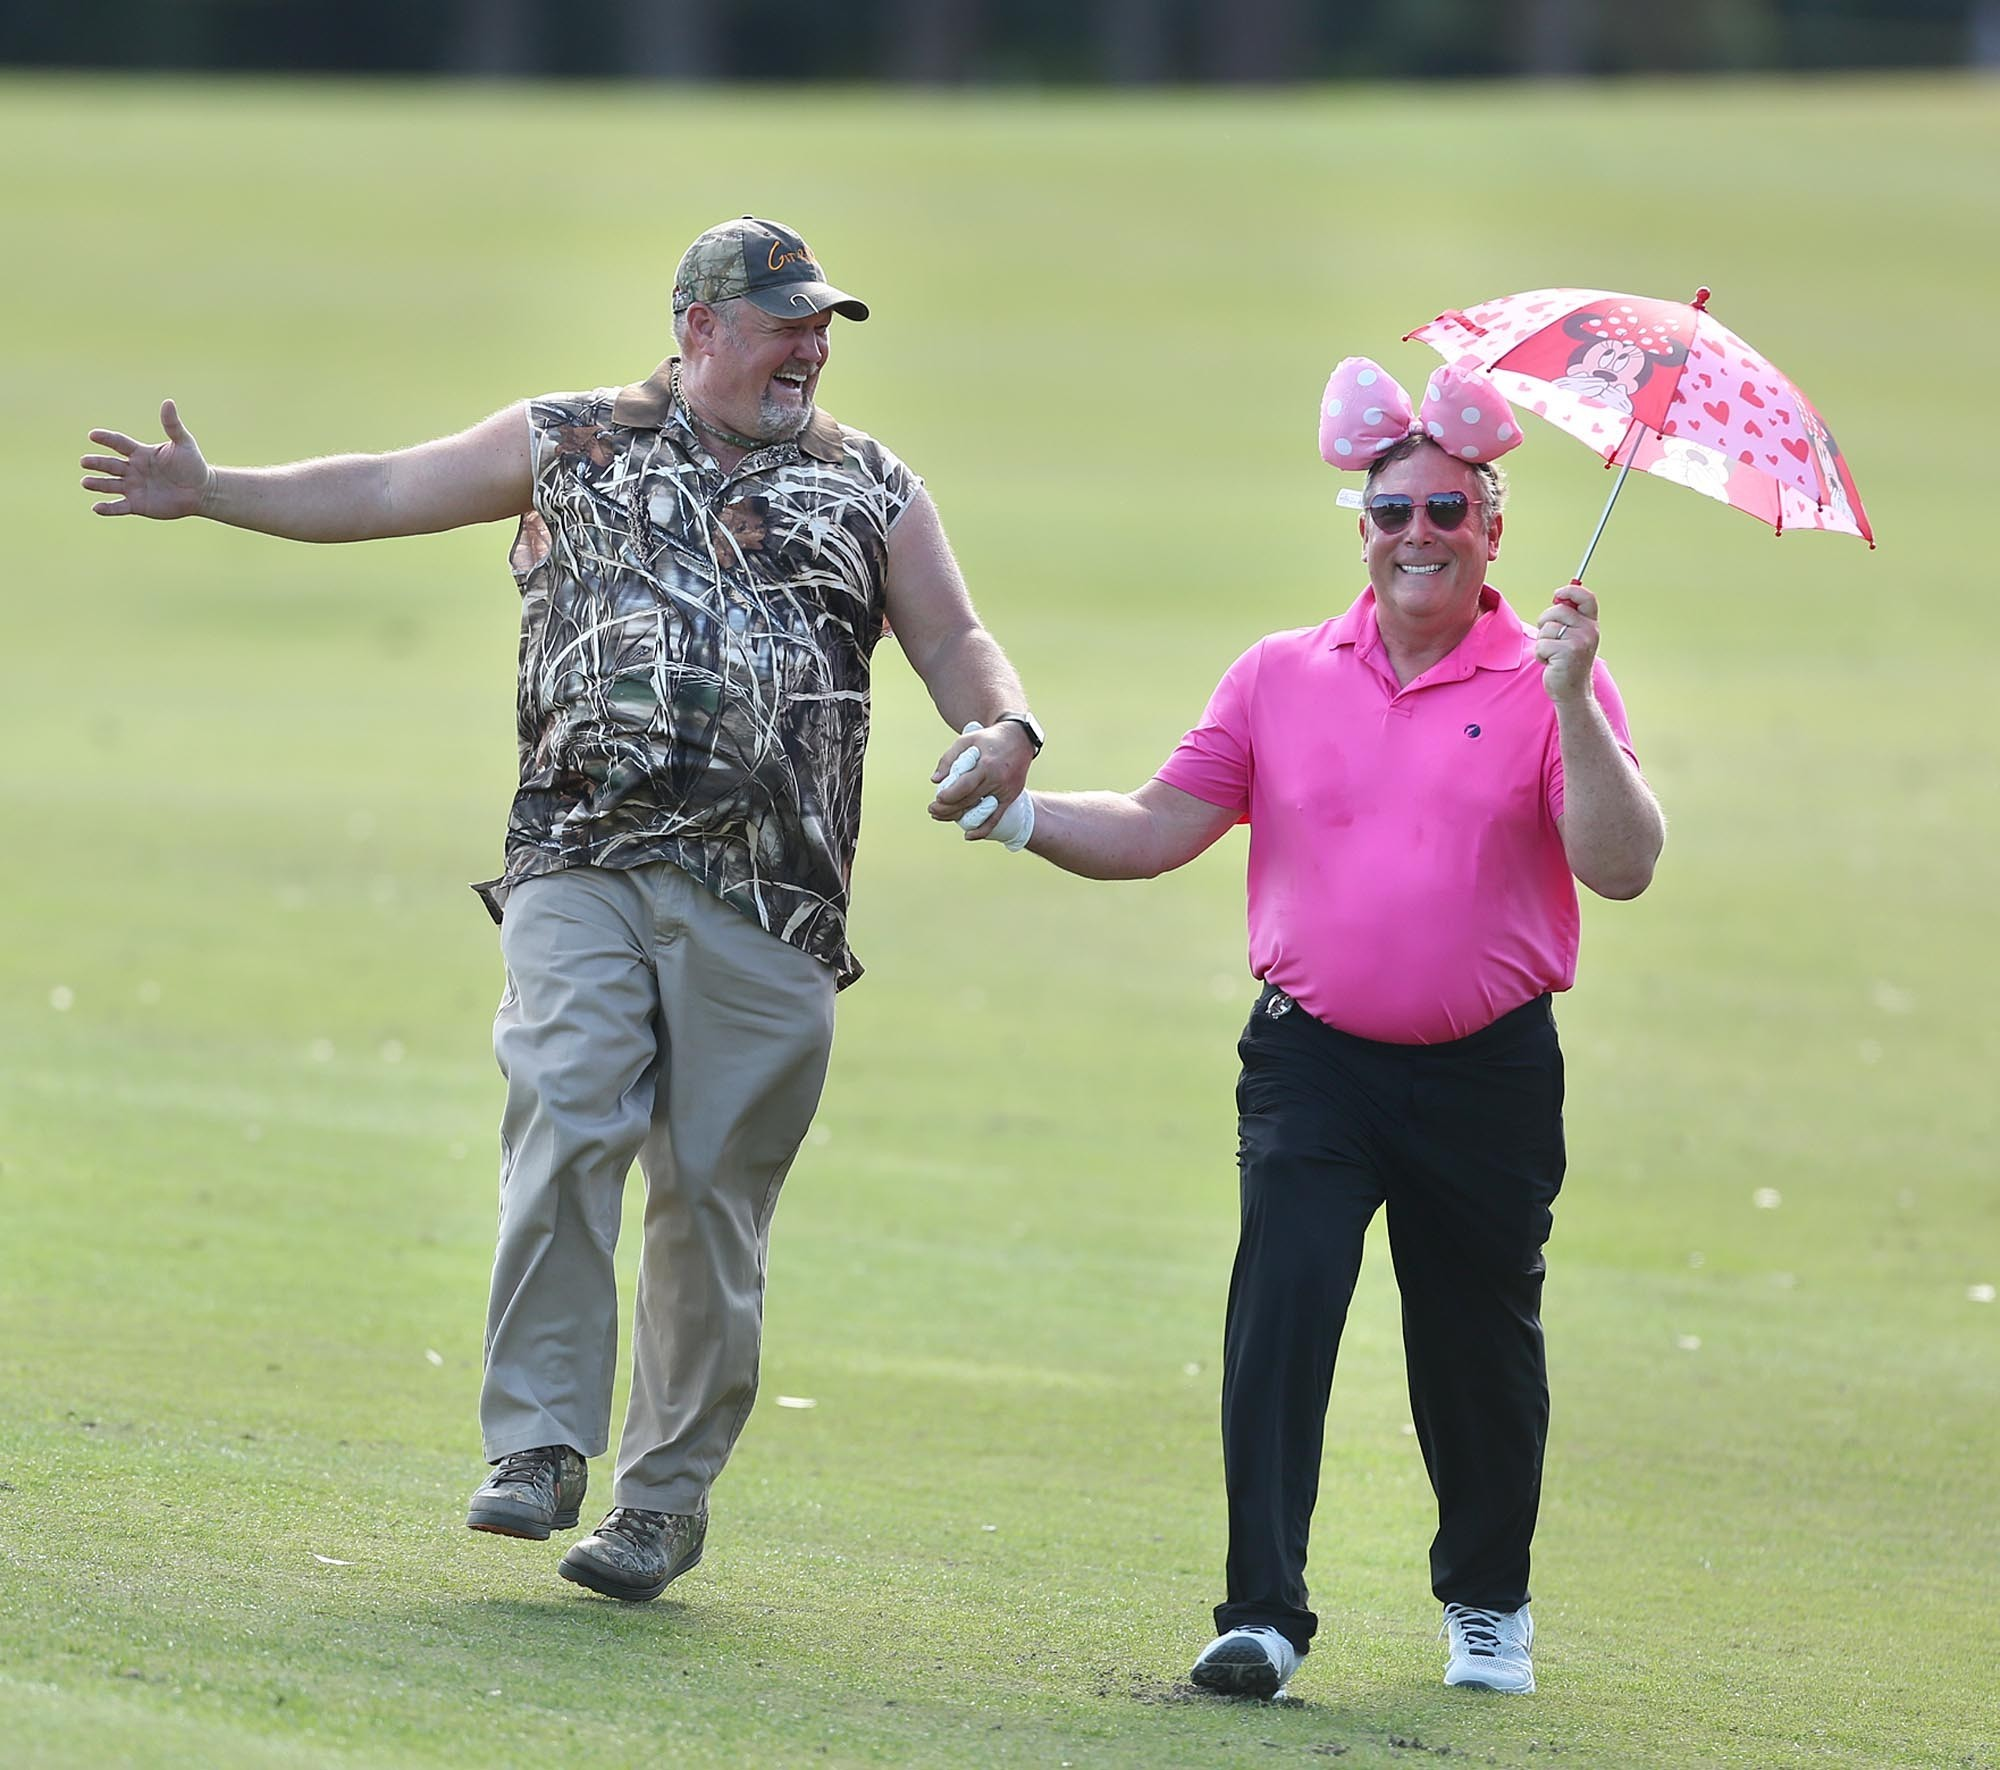 Celebrity golf tournament coming to Windermere - Orlando ...